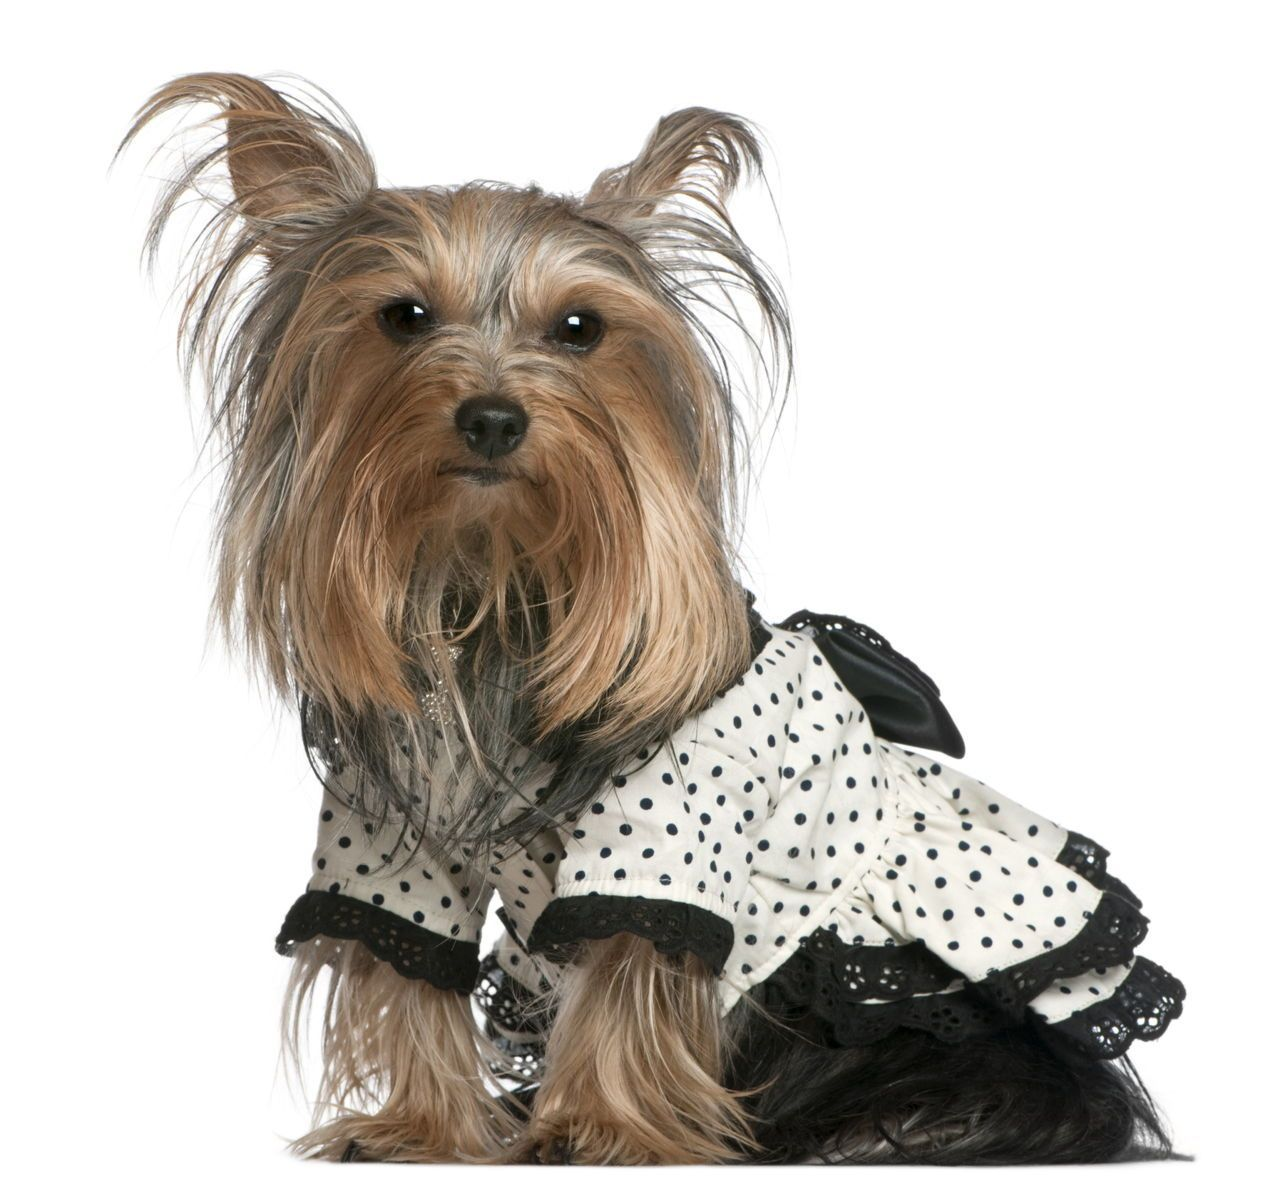 Yorkshire Terrier Wearing Black And White Yorkshireterrier Yorkshire Terrier Puppies Yorkshire Terrier Clothes Yorkshire Terrier